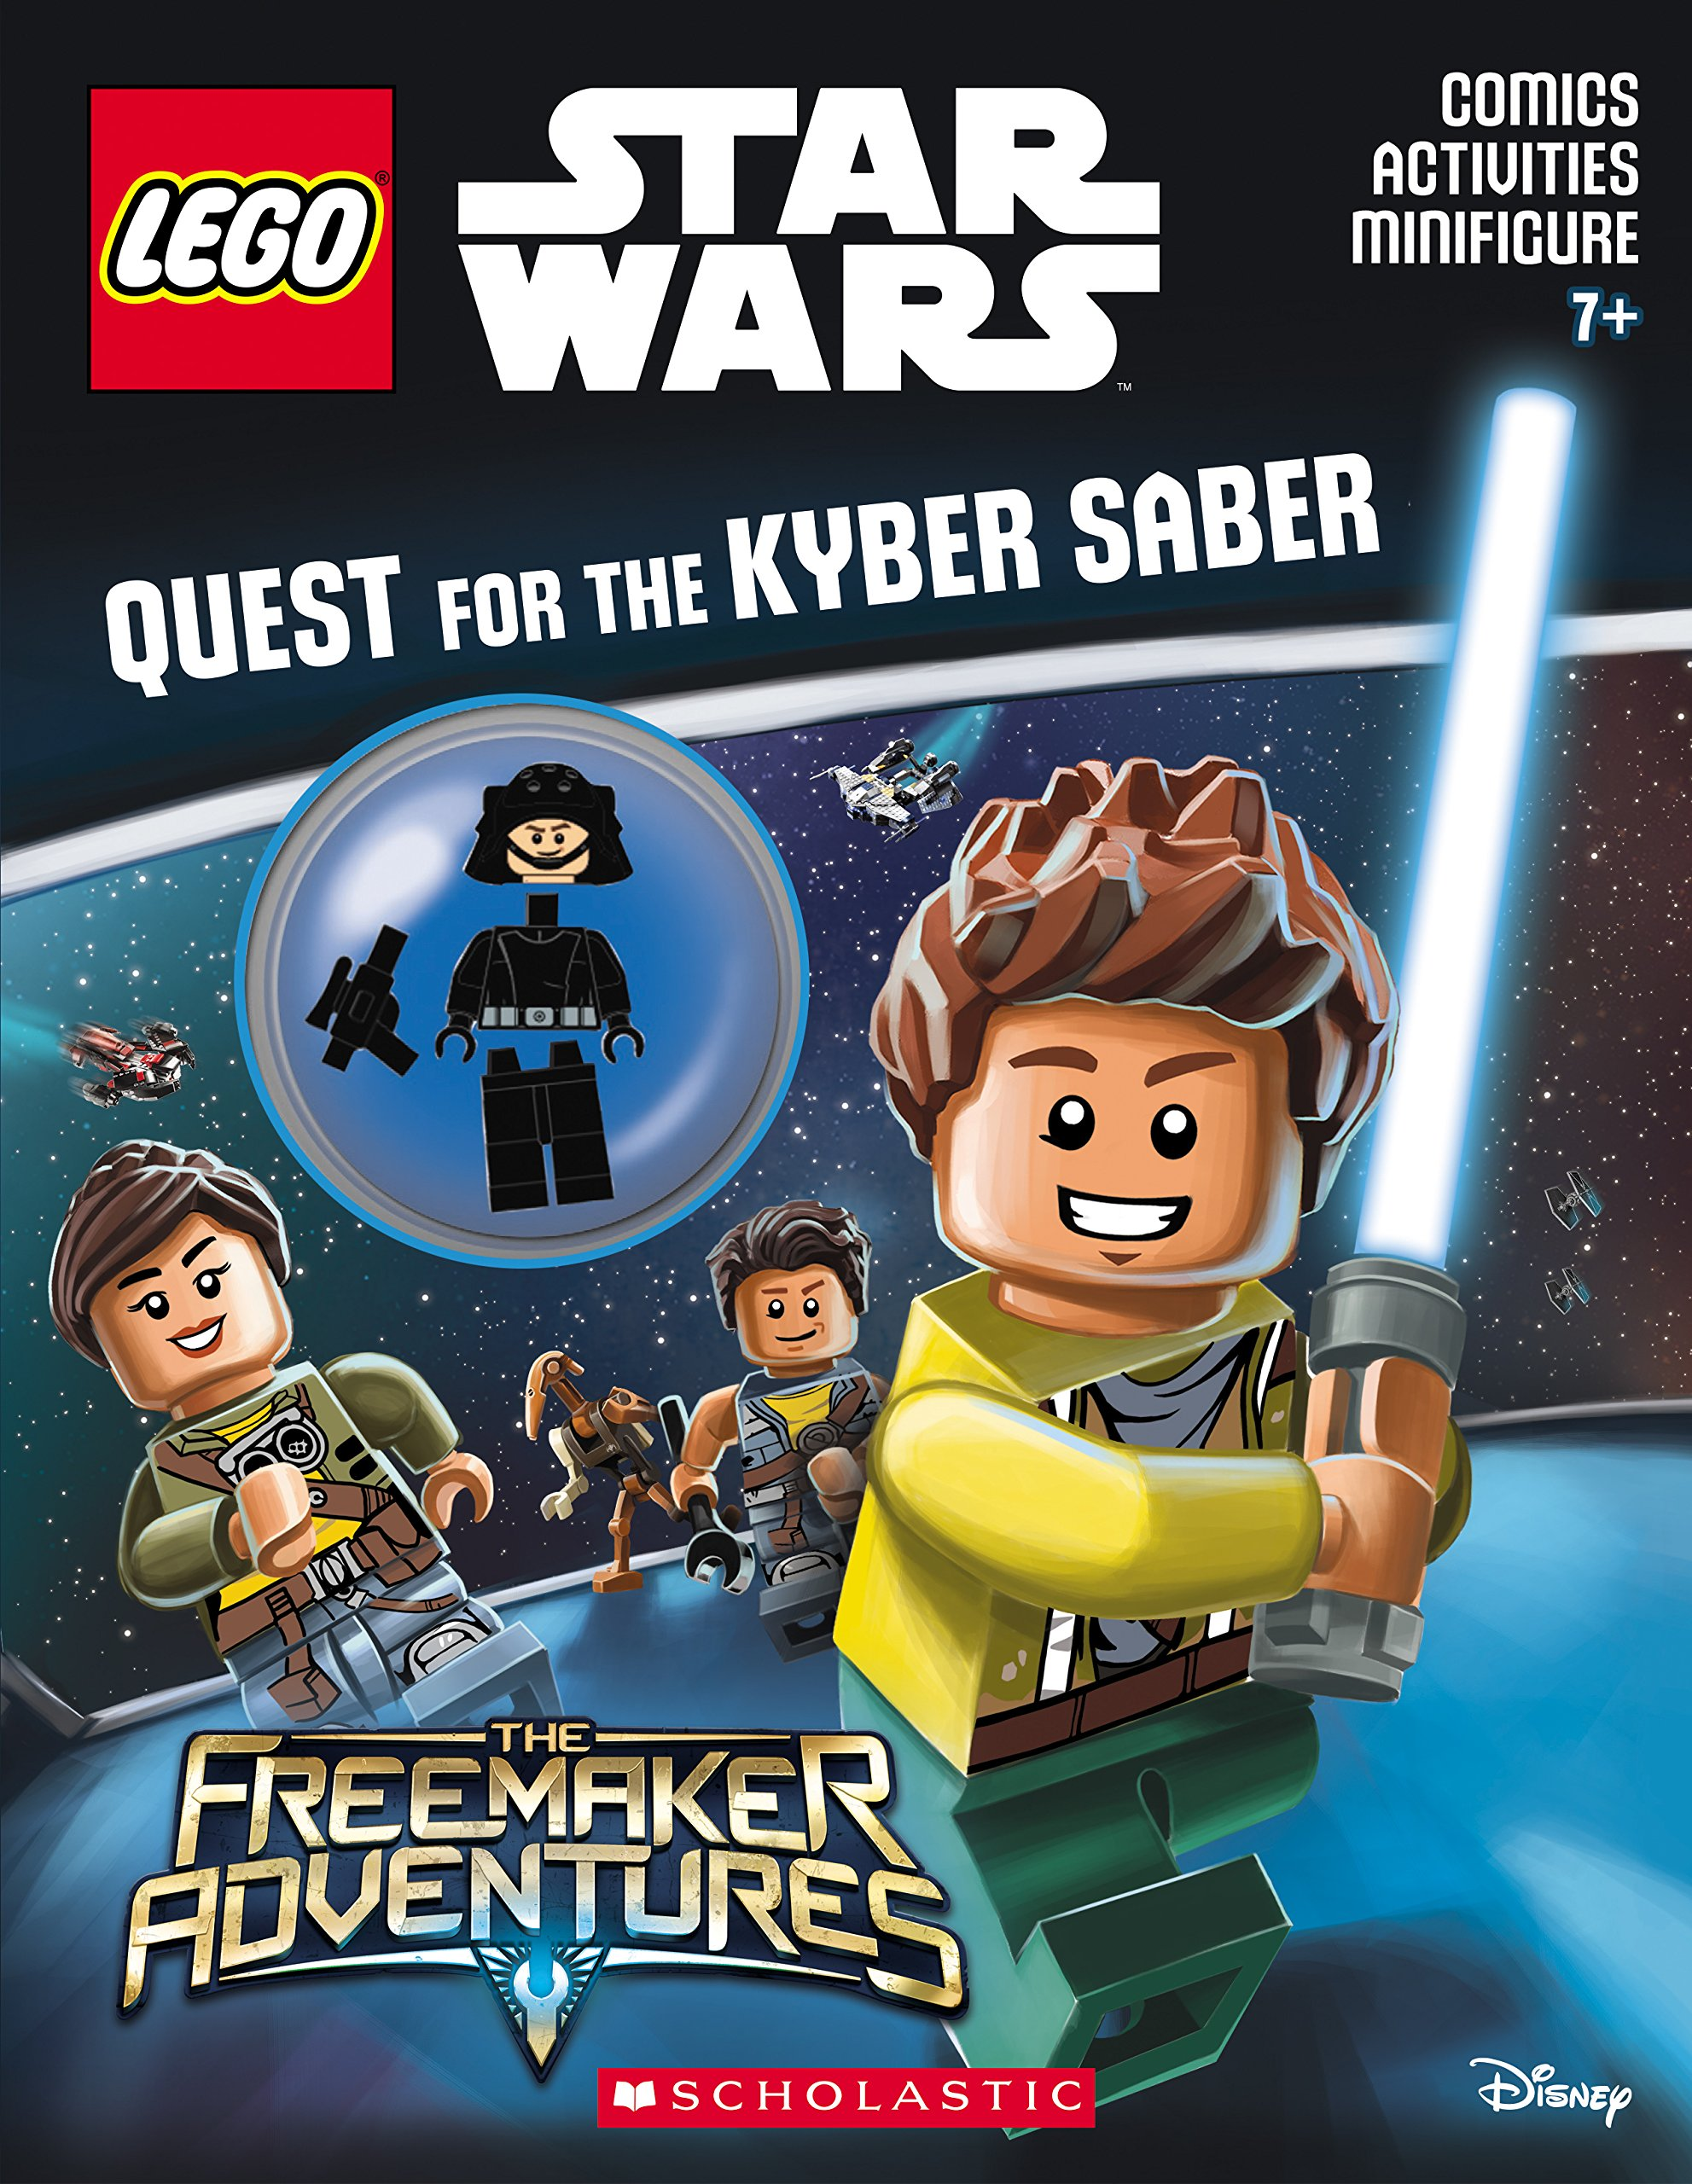 Lego Star Wars: Quest for the Kyber Saber